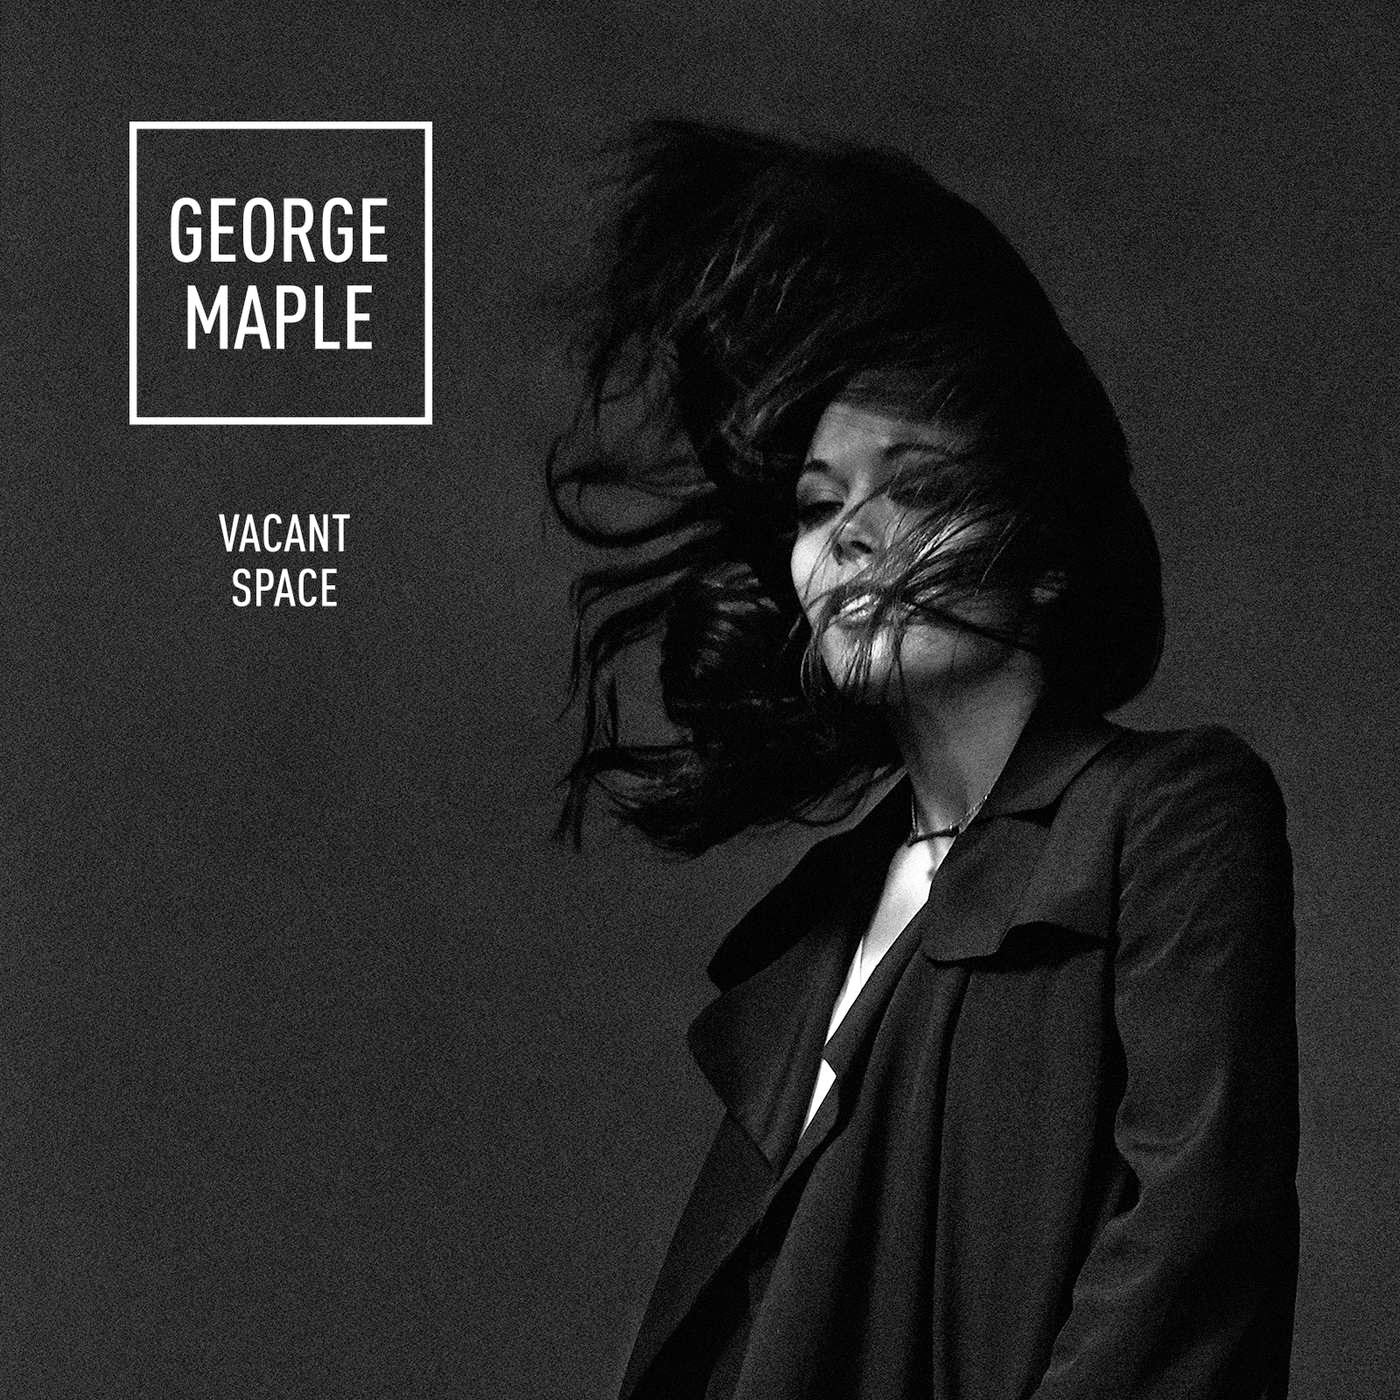 http://www.d4am.net/2014/12/george-maple-vacant-space.html